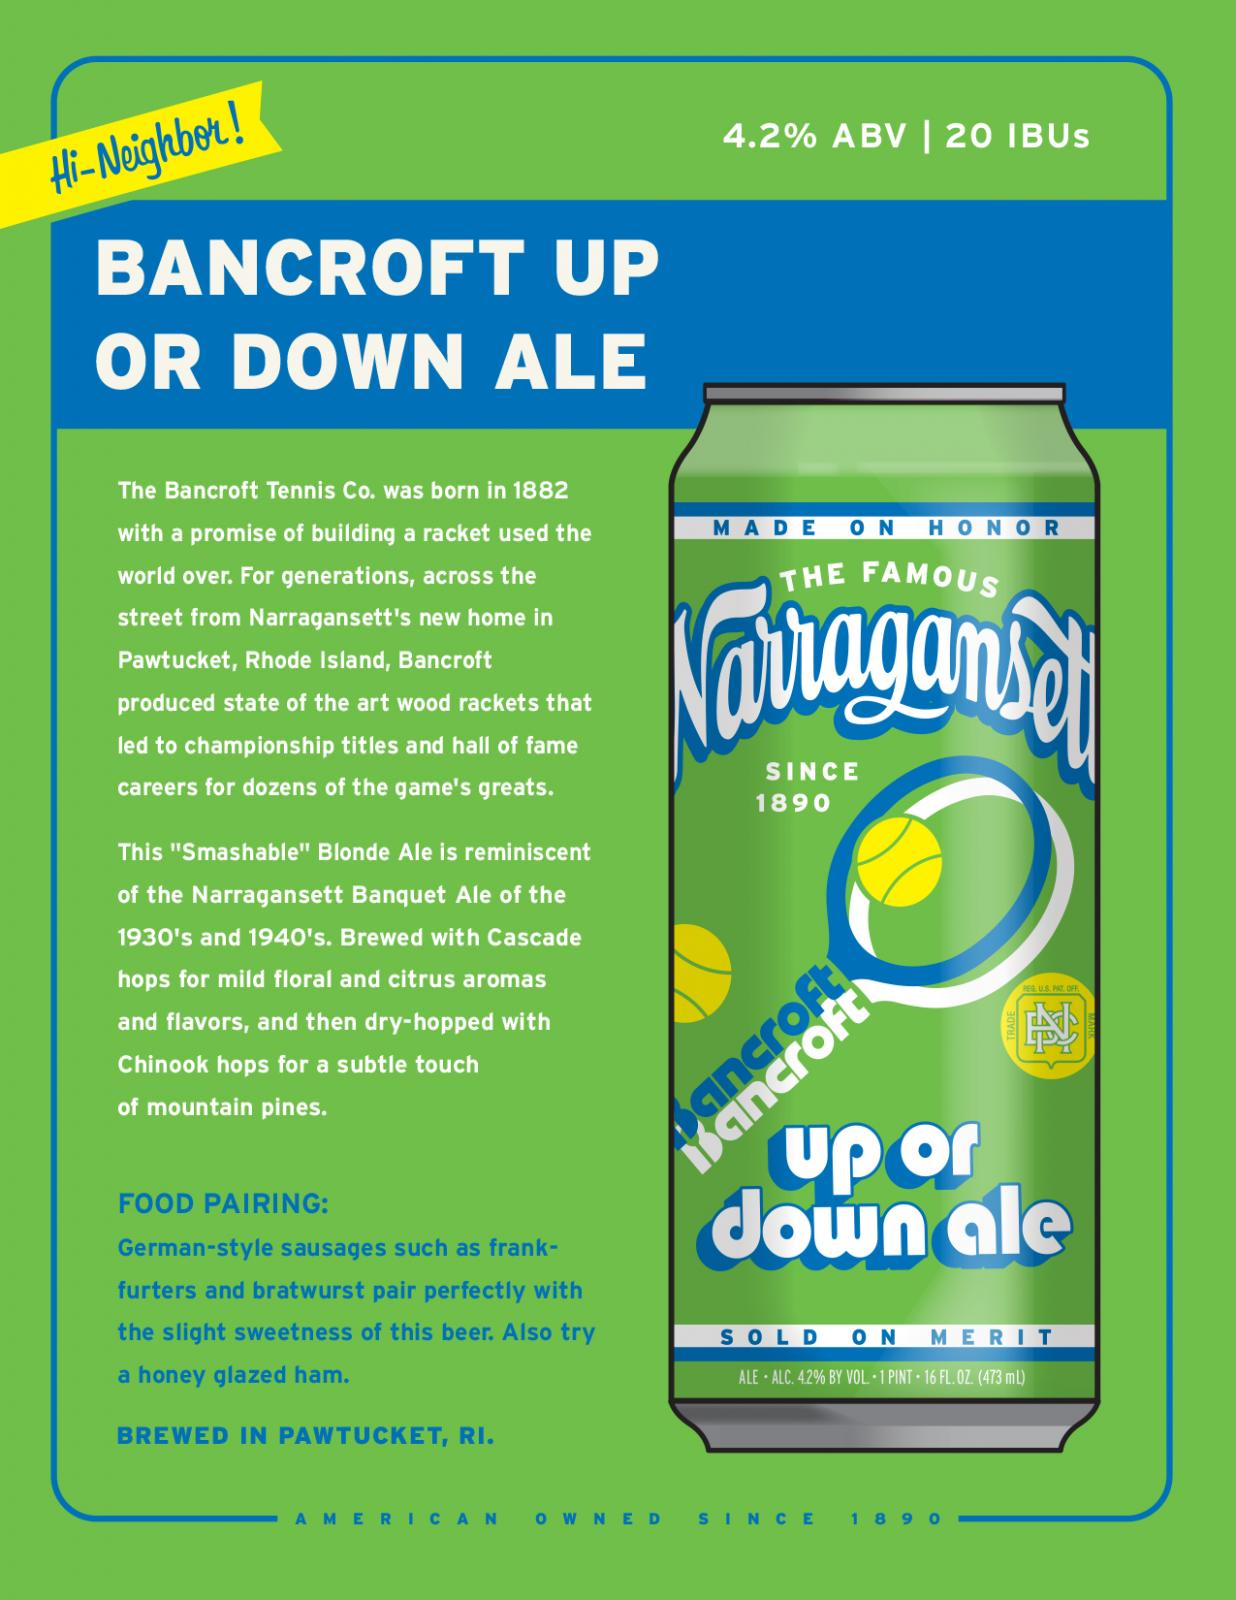 Bancroft Up or Sown Ale